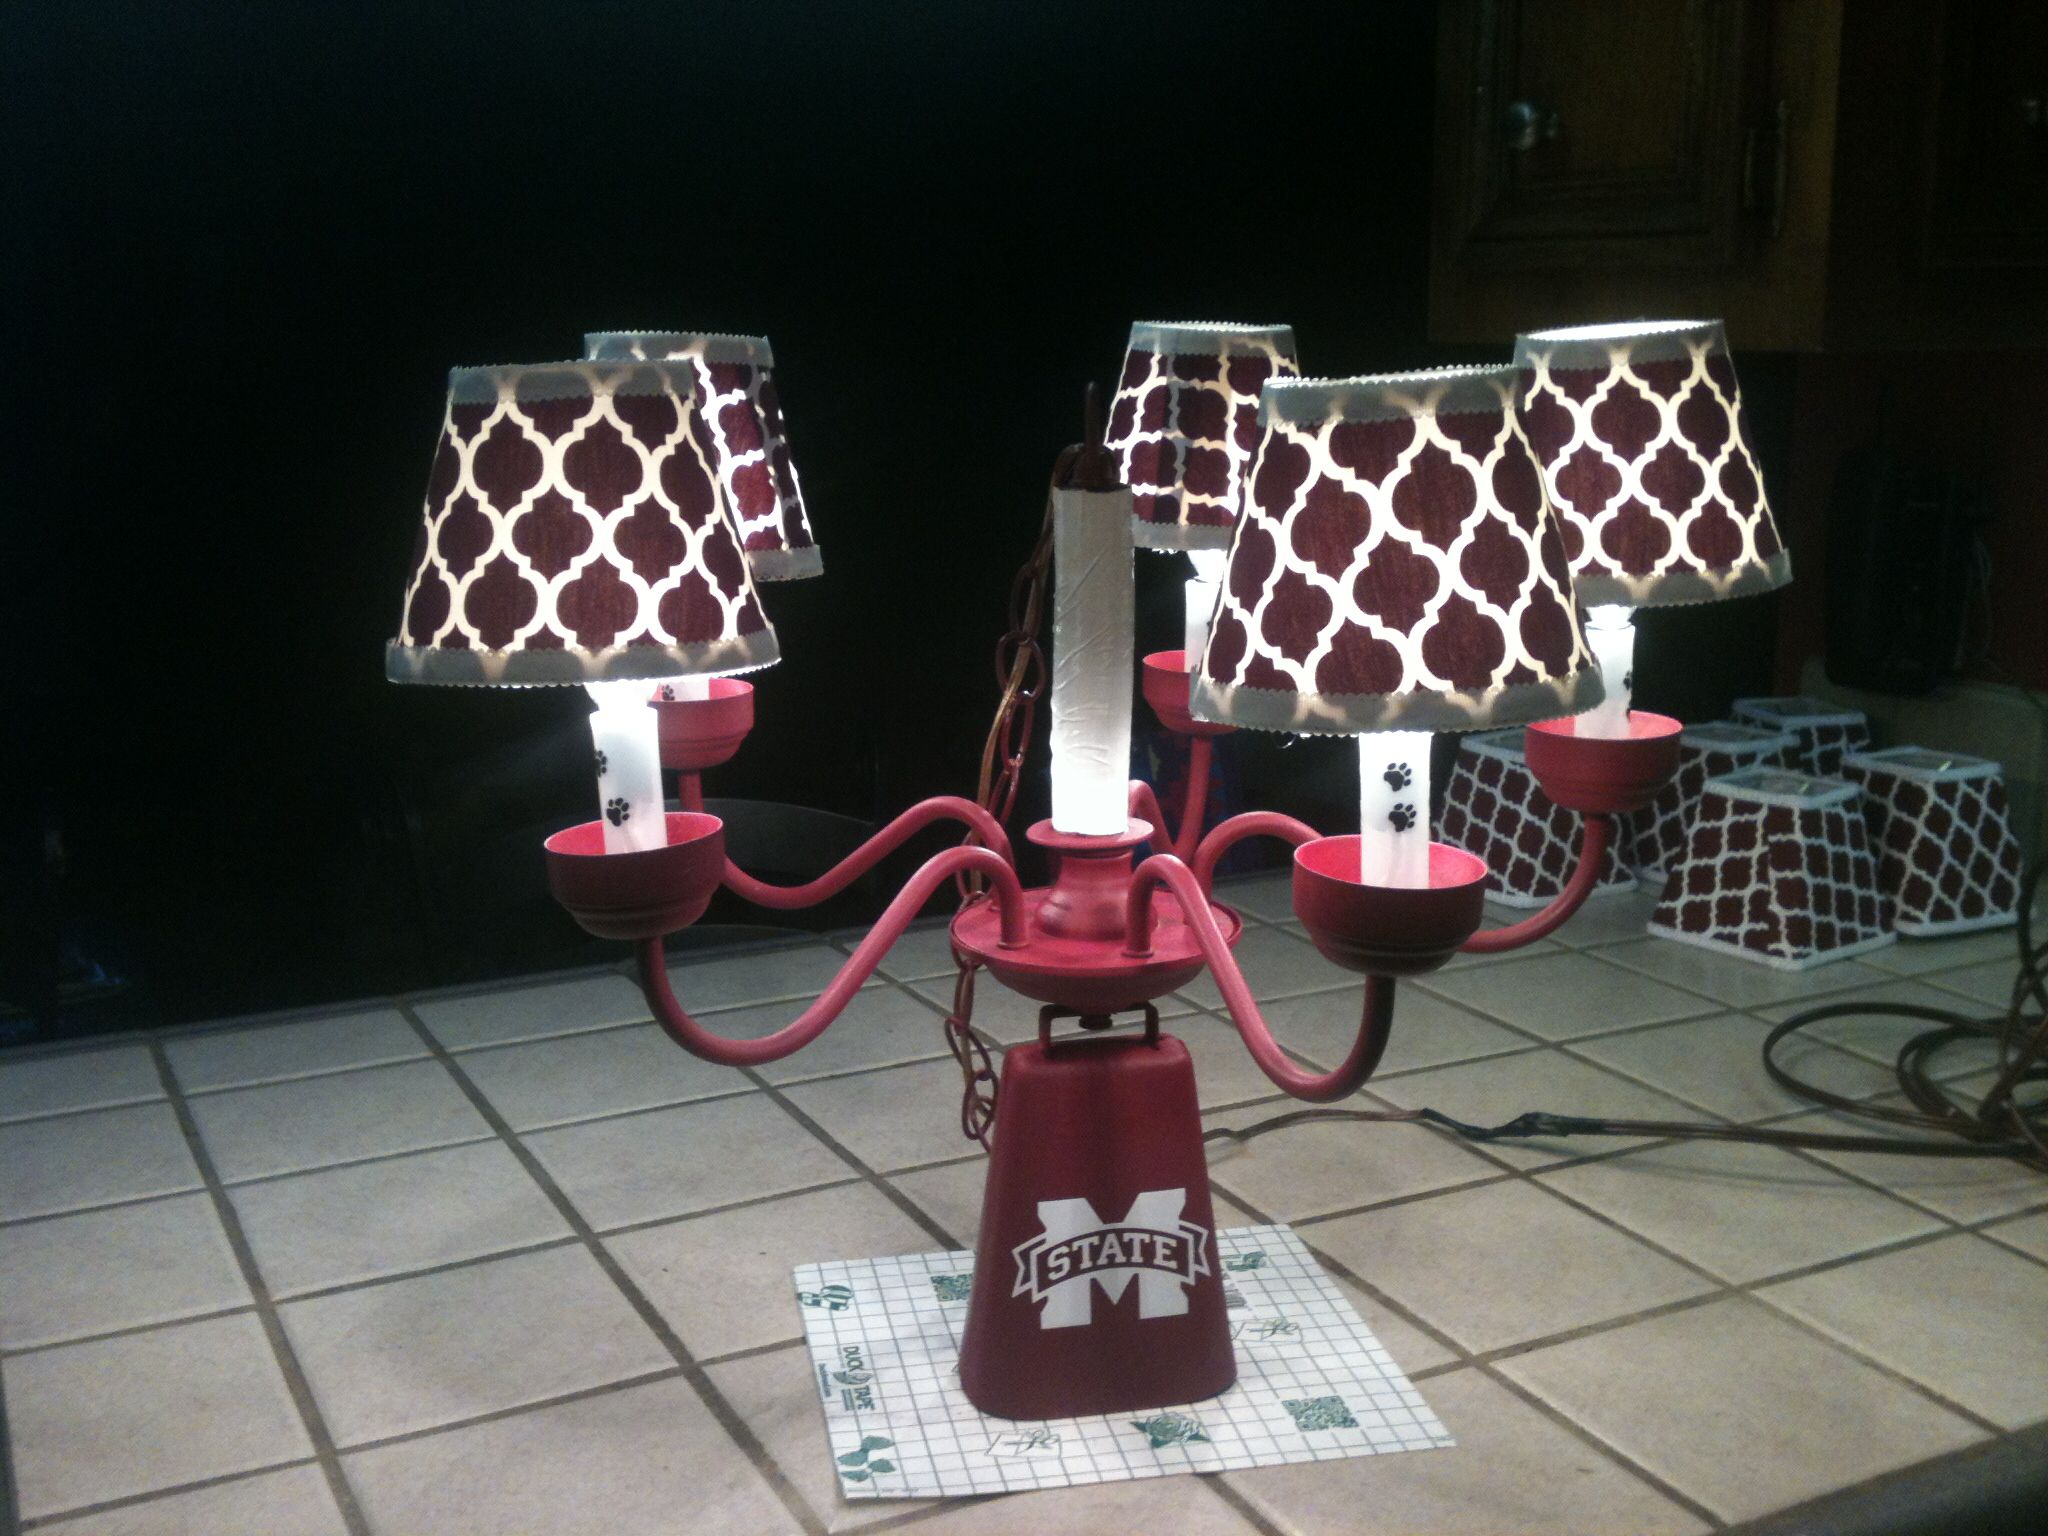 Msu tailgate chandelier hail state tailgate ideas pinterest msu tailgate chandelier hail state arubaitofo Image collections